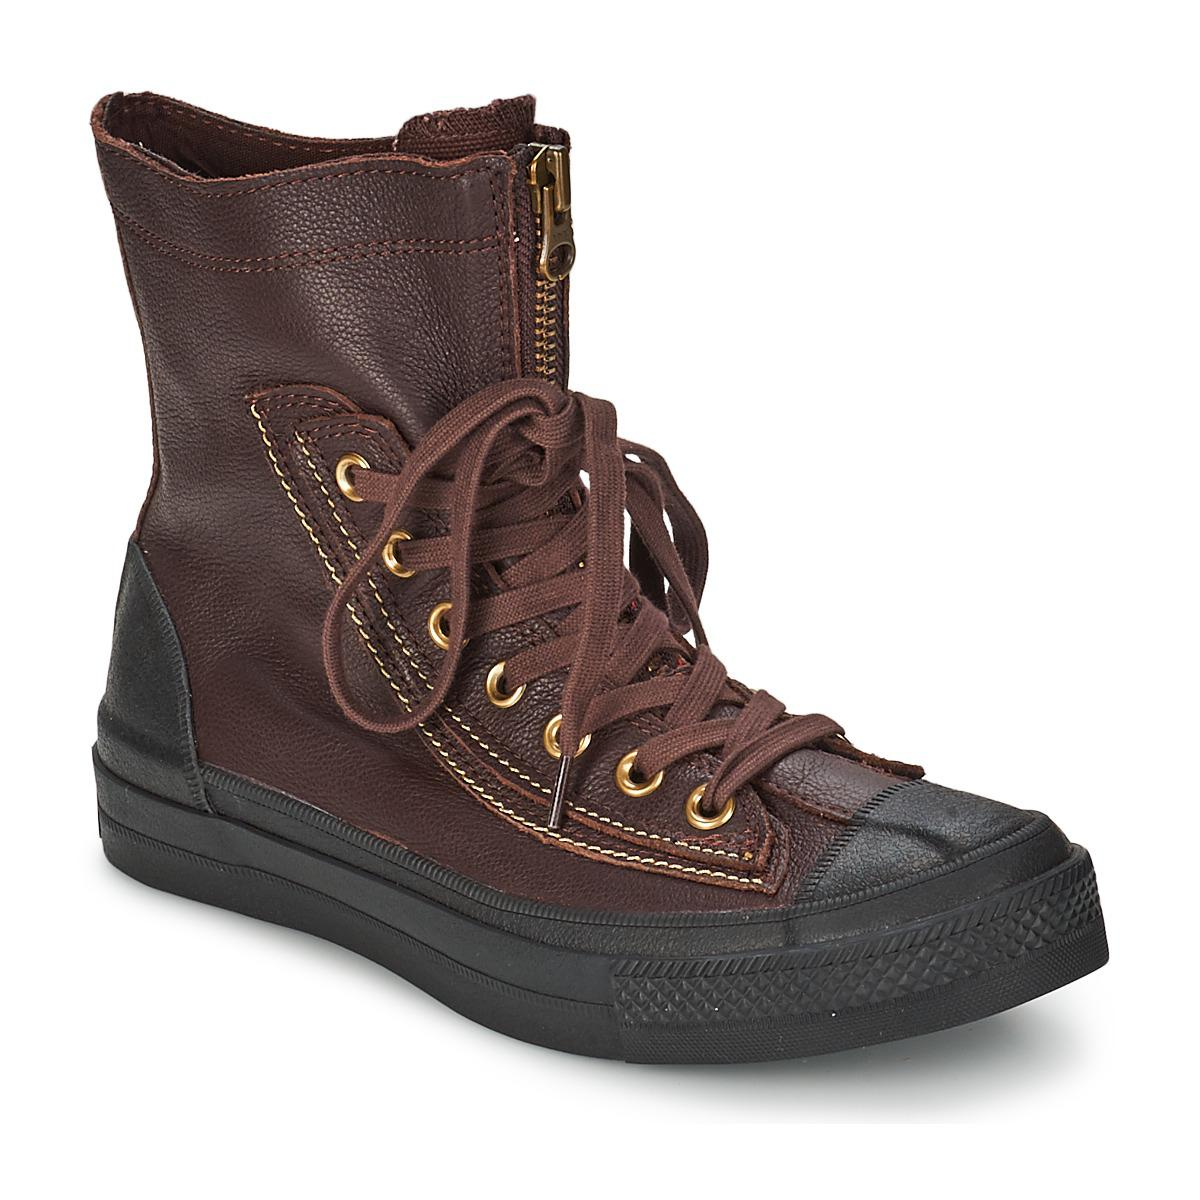 bfebb185be7da7 Converse All Star Combat Boot Women s Shoes (high-top Trainers) In ...